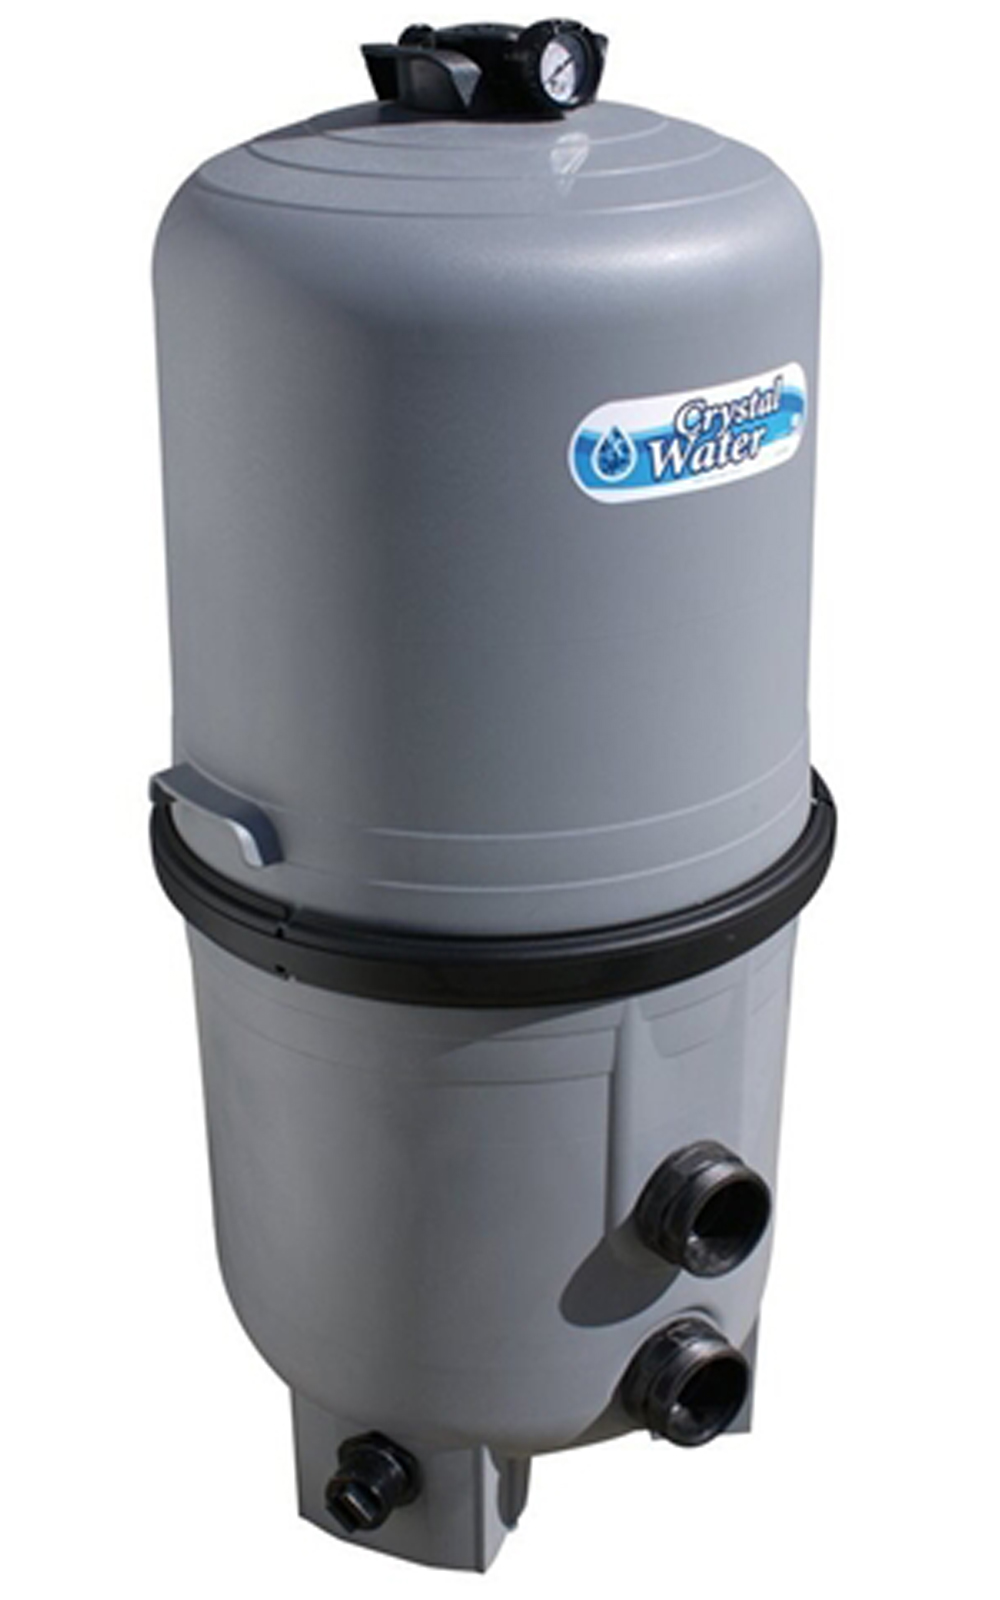 Waterway Crystal Water Quad 425 Sq Ft In Ground Swimming Pool Cartridge Filter Ebay